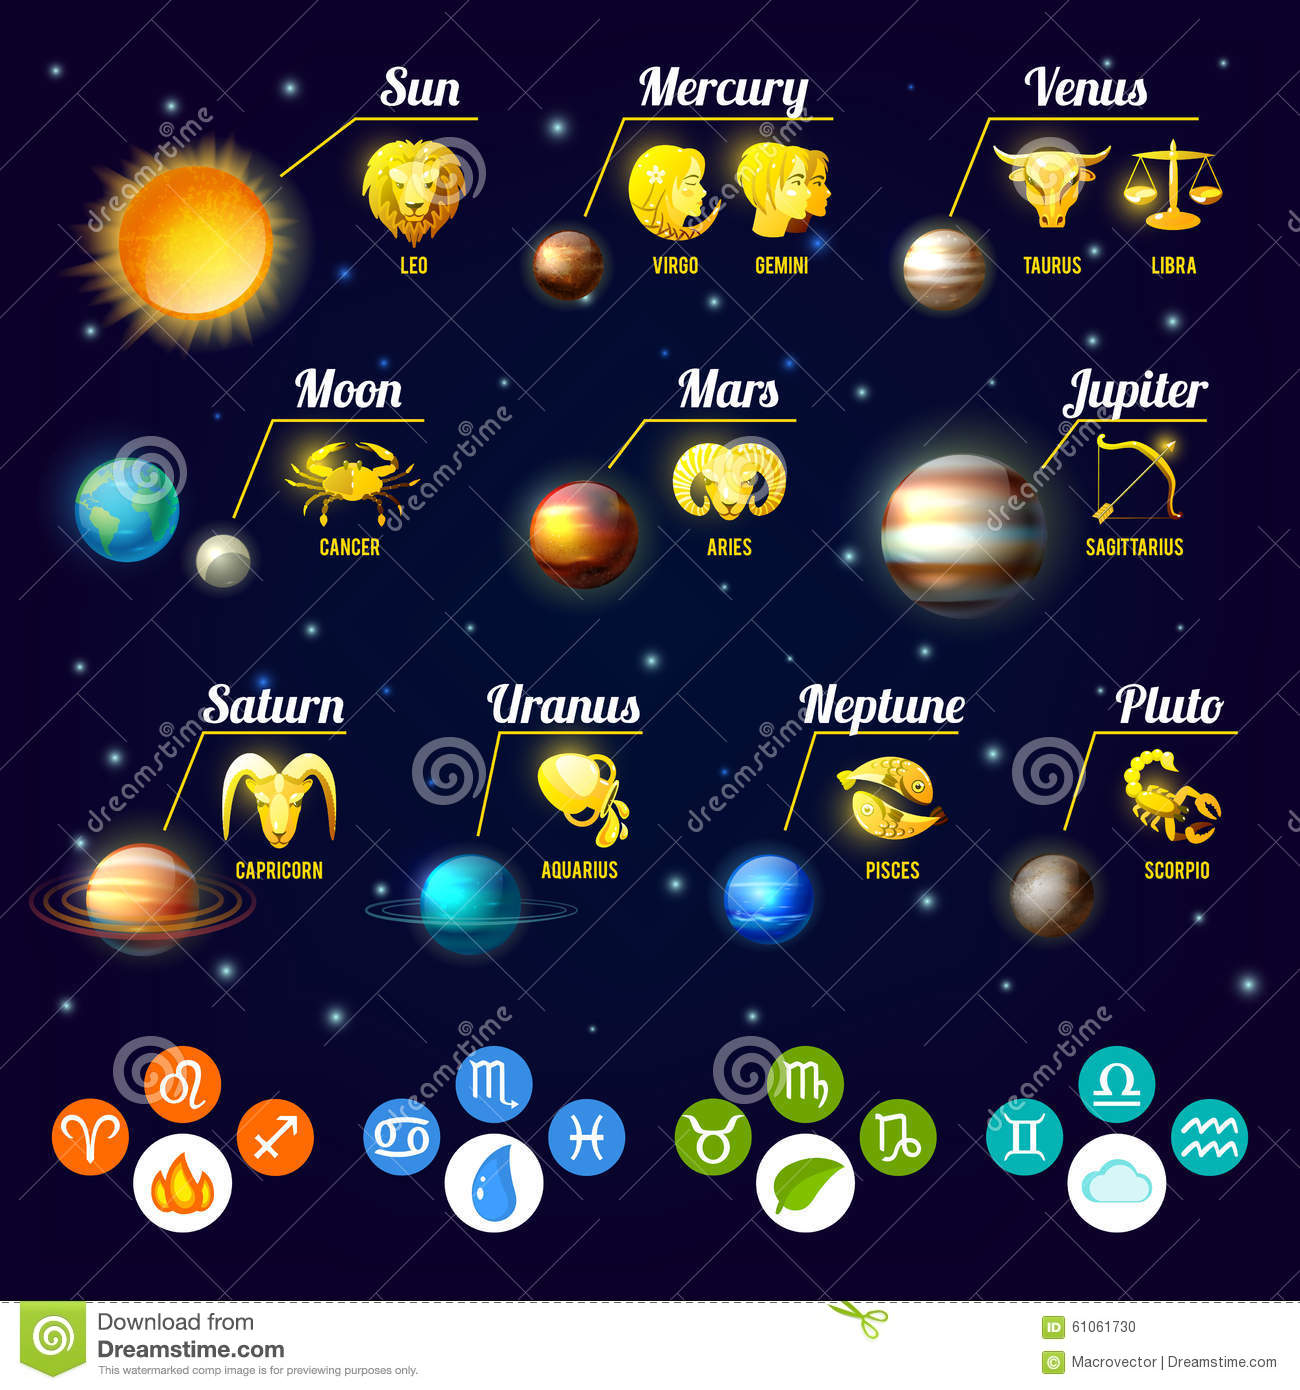 solar system zodiac signs - photo #30